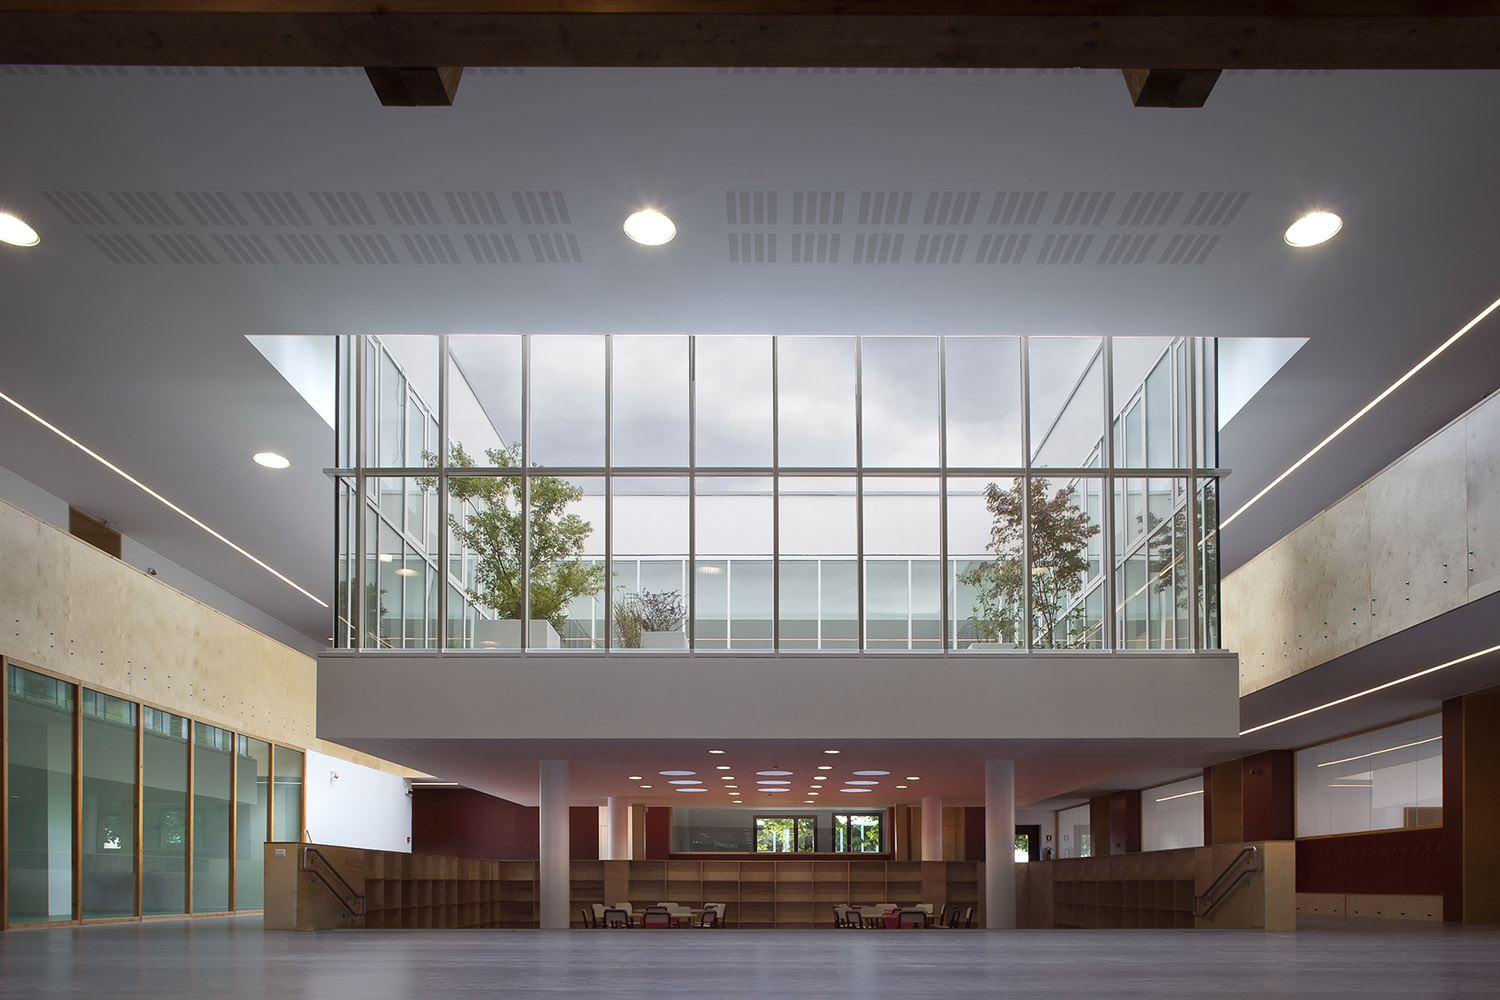 mm_Chiarano Primary School design by C+S Architects_01